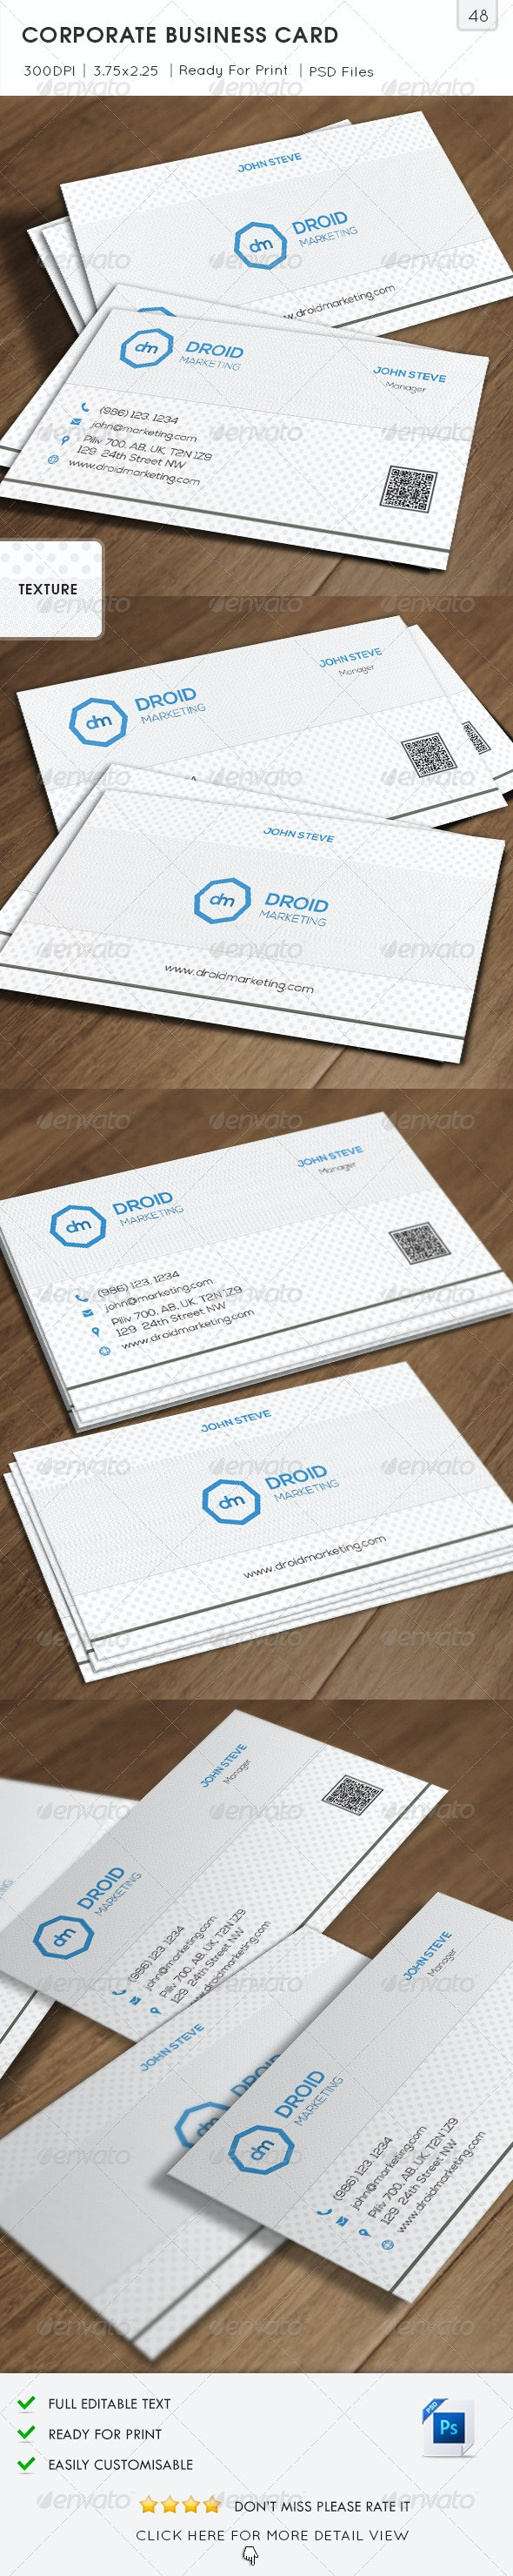 Marketing Corporate Business Card v48 - Corporate Business Cards